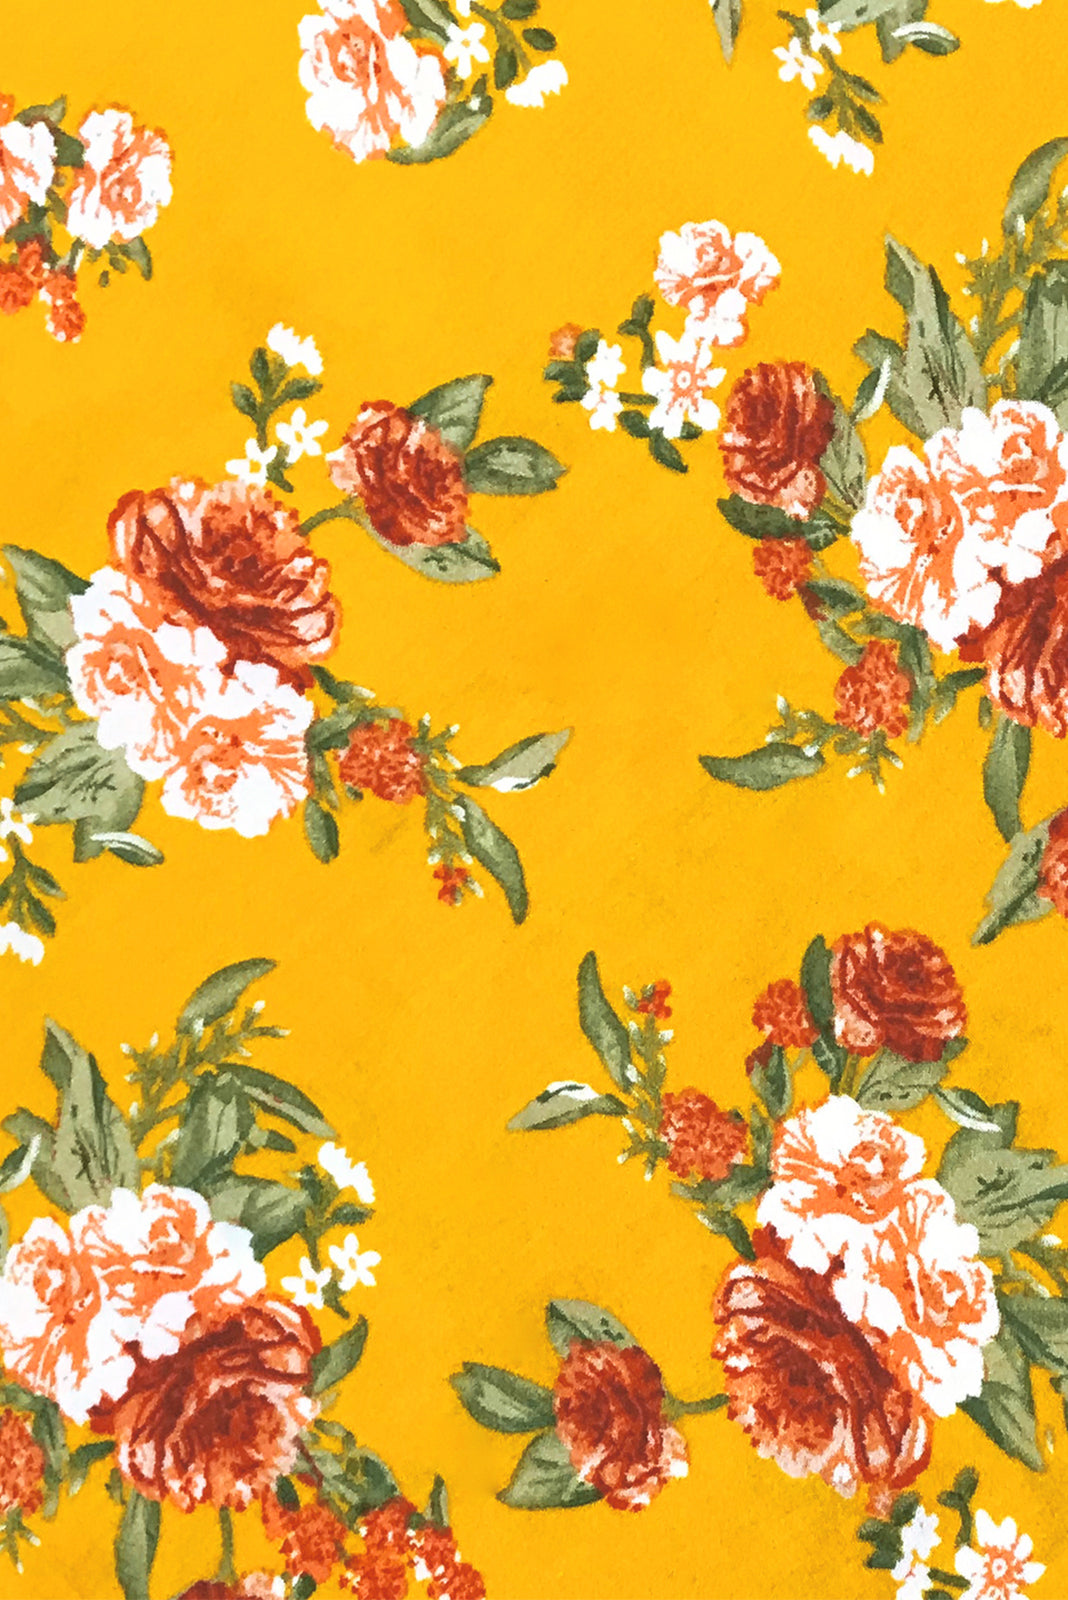 Fabric Swatch of Primrose Texas Gold Dress comes in woven 100% rayon in Rich, gold base with peach, white and amber floral print.